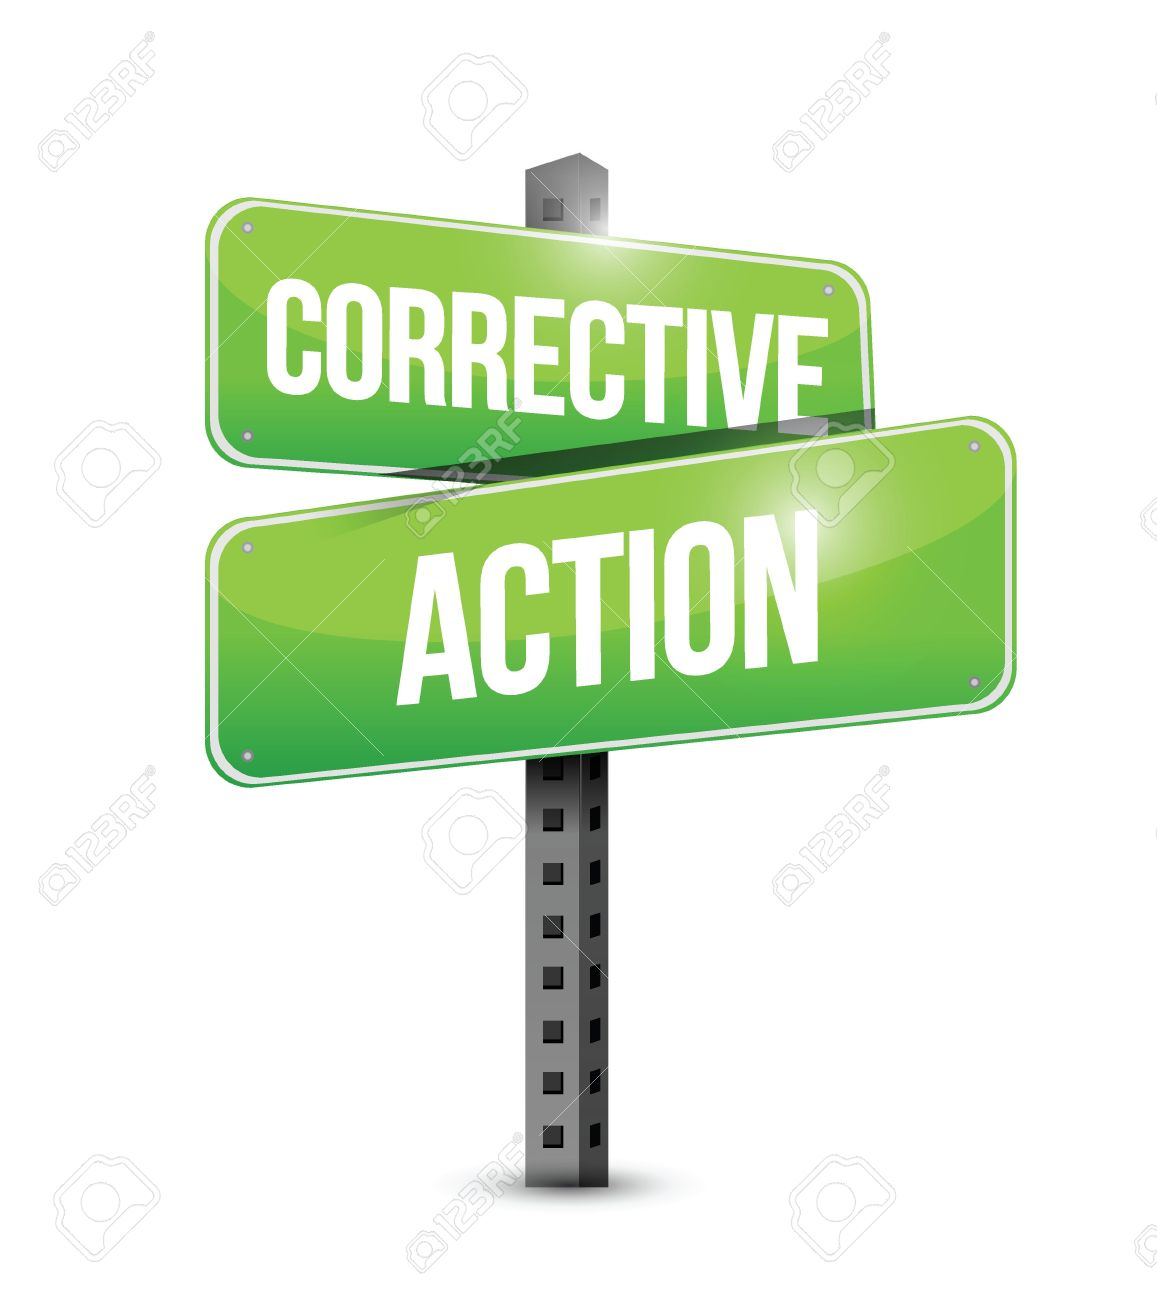 Correction, Corrective Action and Preventive Action